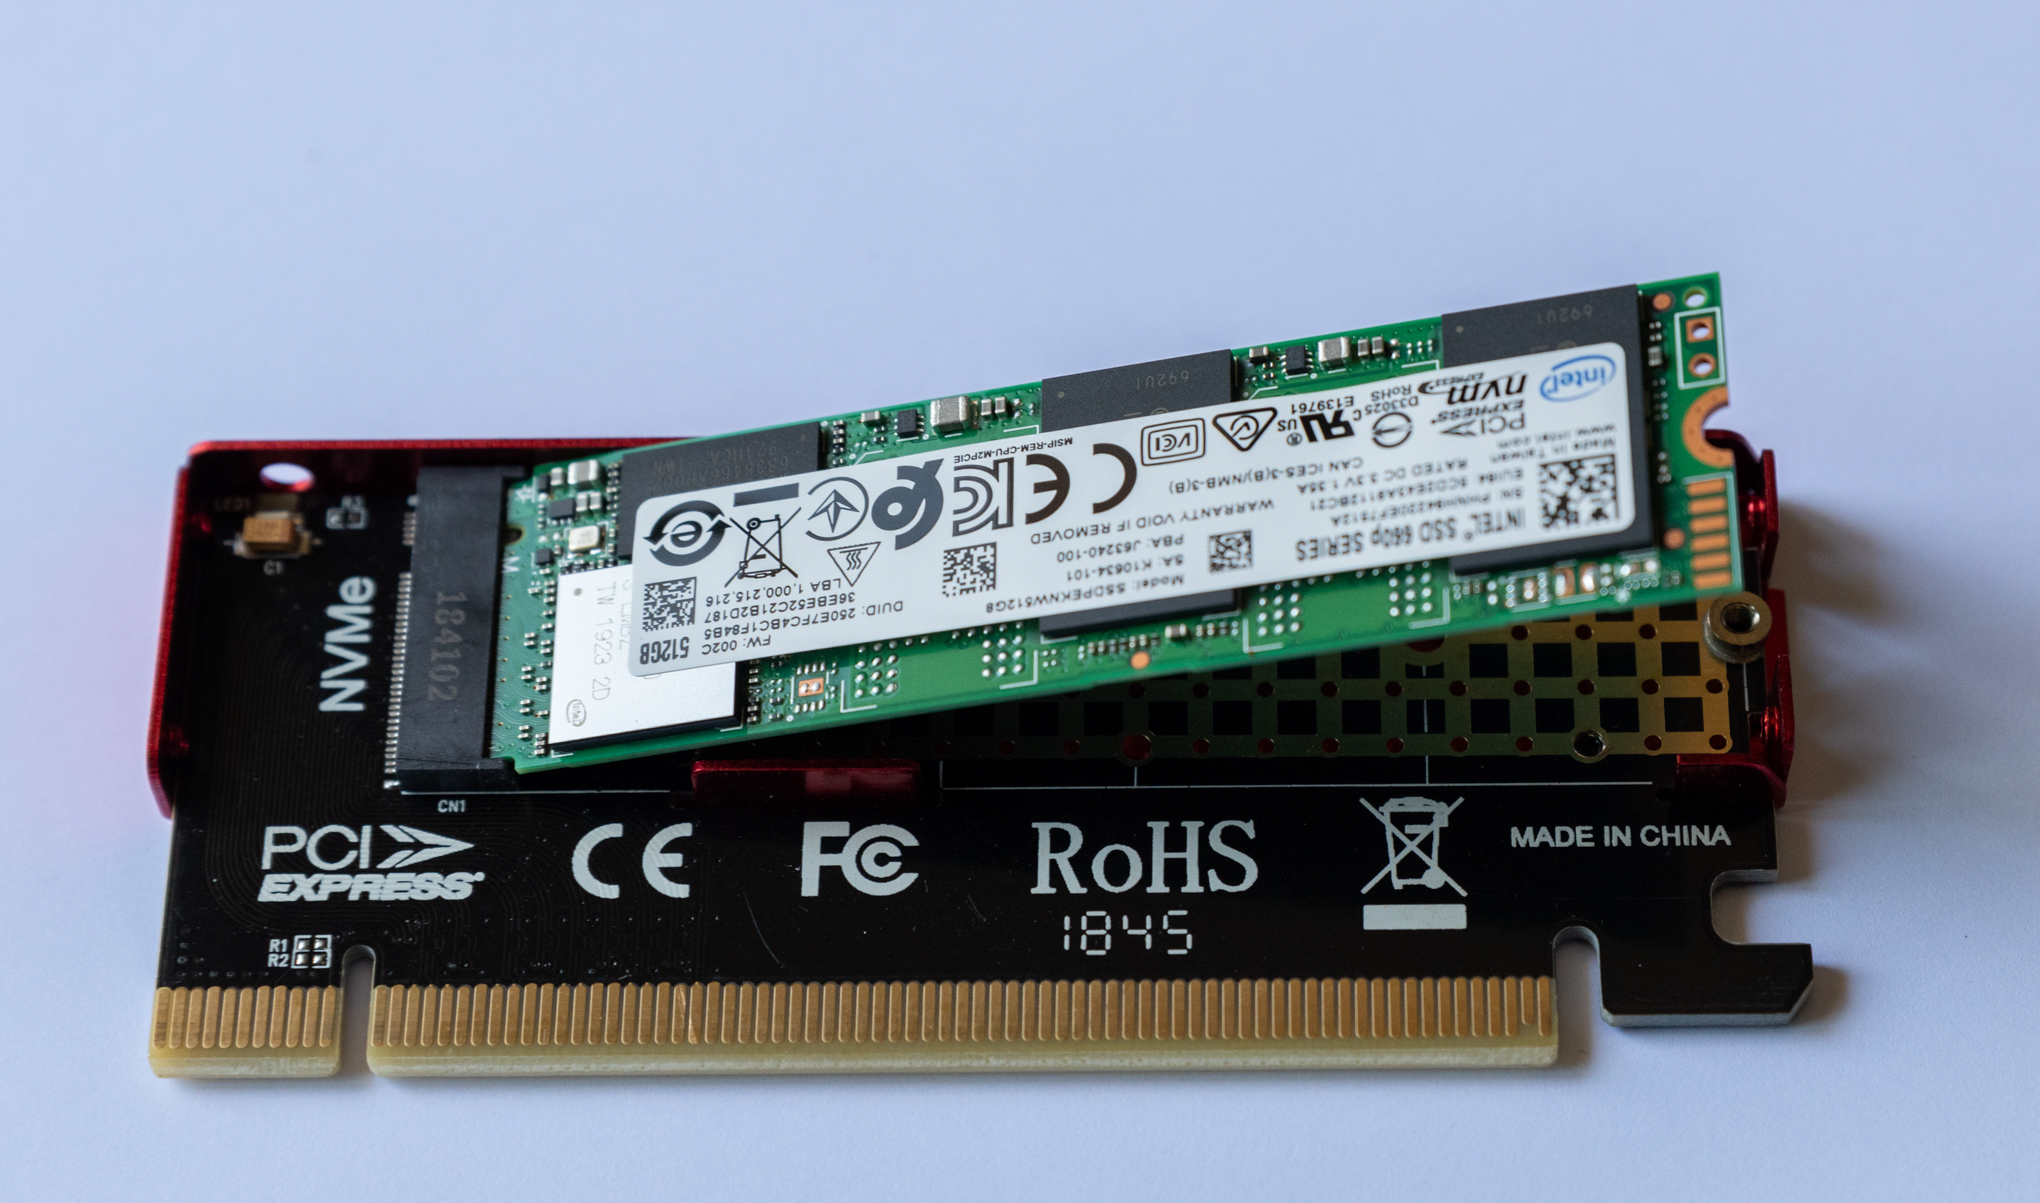 M.2 ssd in Axagon PCIE NVME M.2 ADAPTER